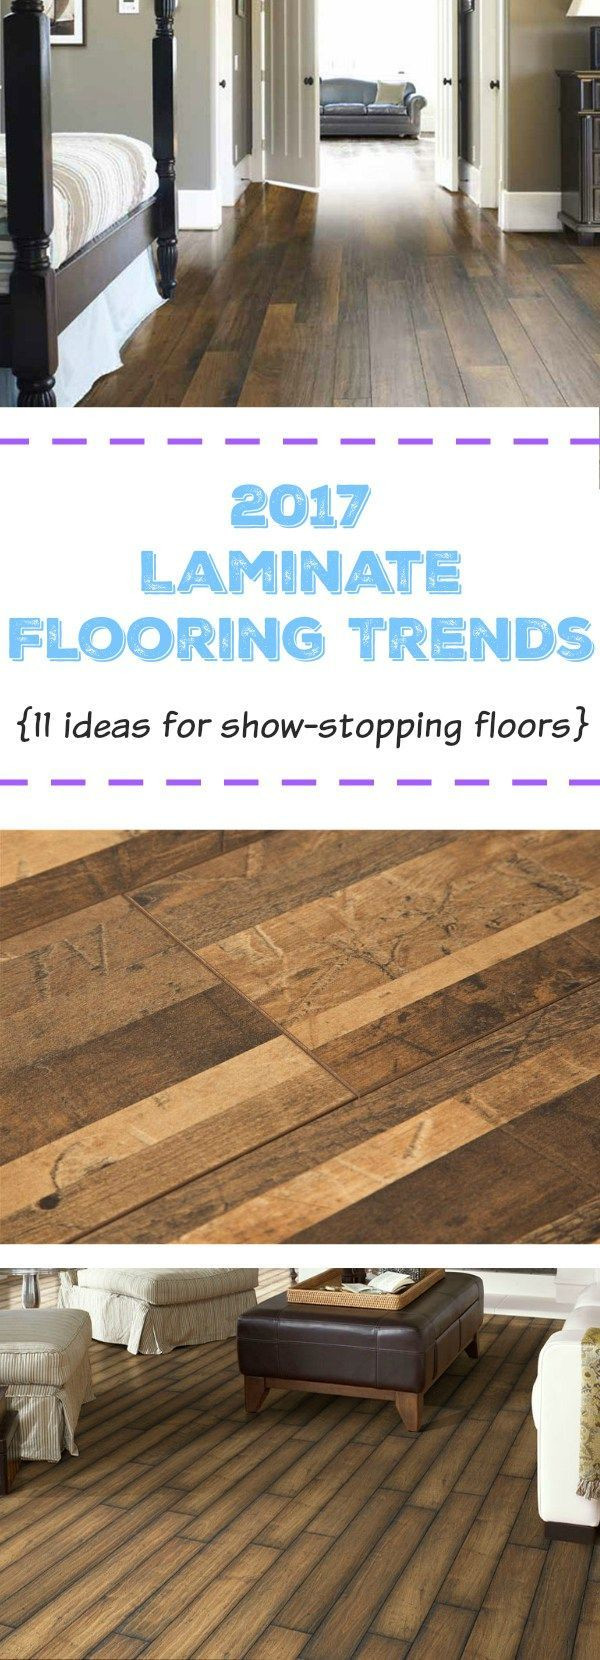 leftover hardwood flooring ideas of 130 best designs we love images on pinterest basement ideas with regard to 2017 laminate flooring trends 11 ideas for show stopping floors